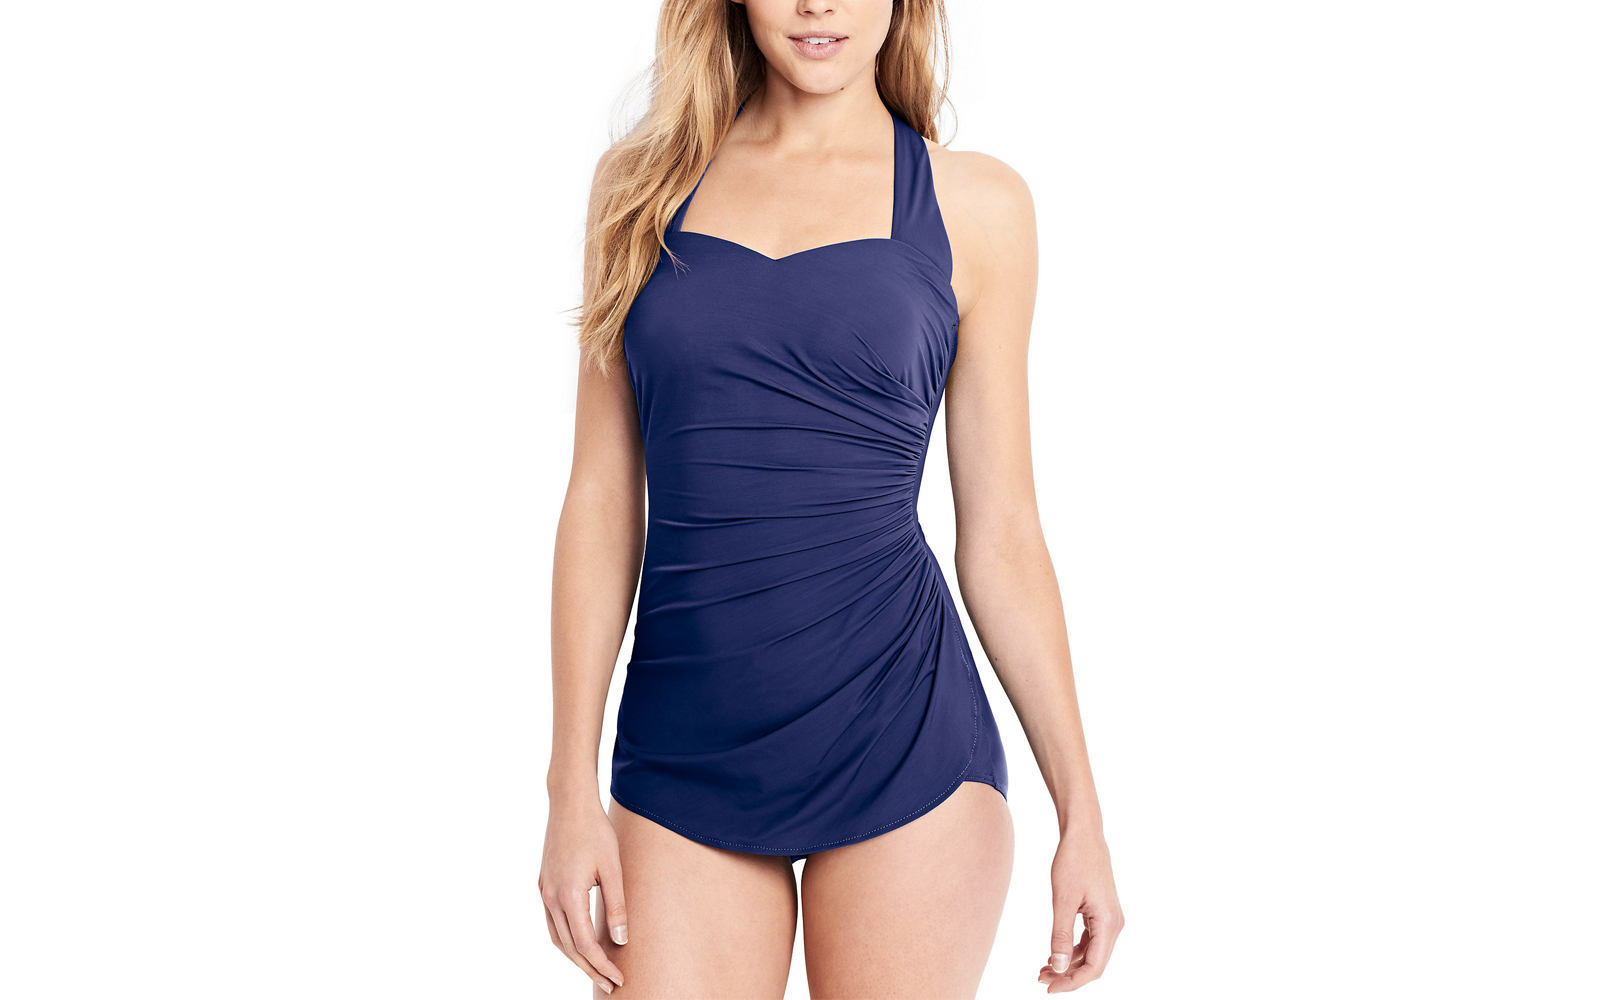 Women's Slender Tunic One Peice Swimsuit with Tummy Control